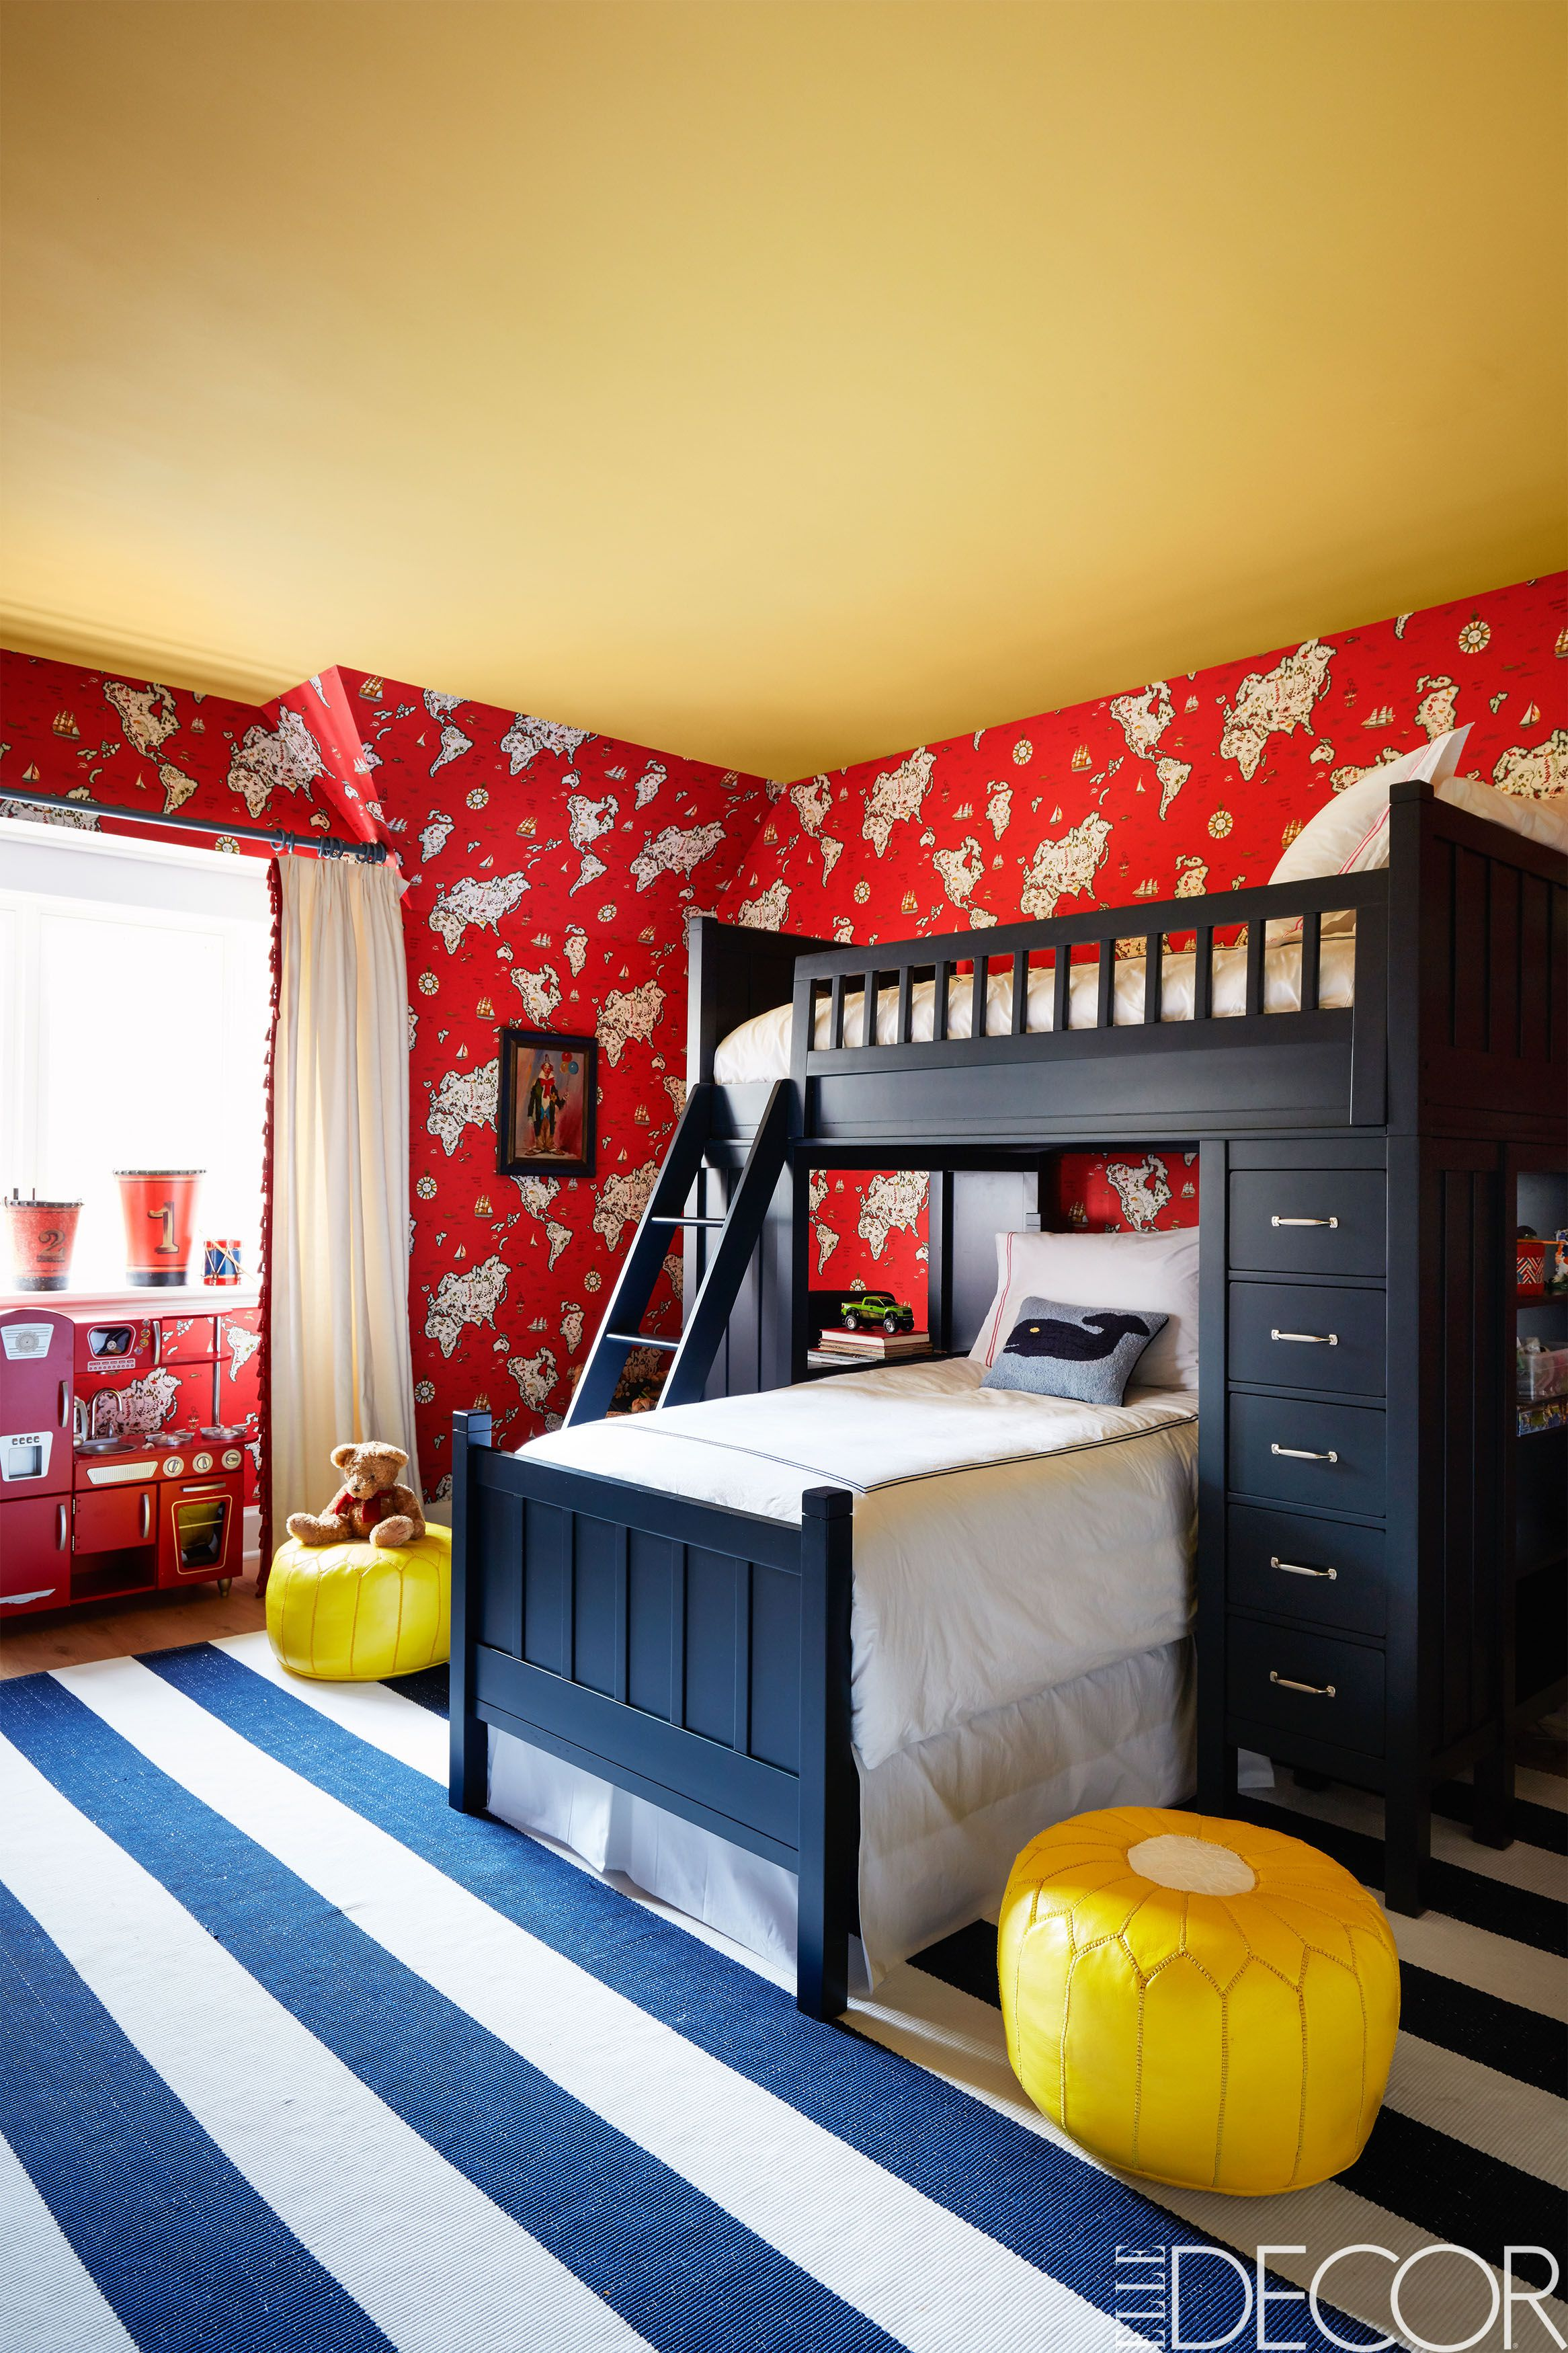 Bedroom Boys Bedroom Design Amazing On For 15 Cool Ideas Decorating A Little Boy Room 5 Boys Bedroom Design Modern On Popular Ideas Stylid Homes And 23 Boys Bedroom Design Fine On